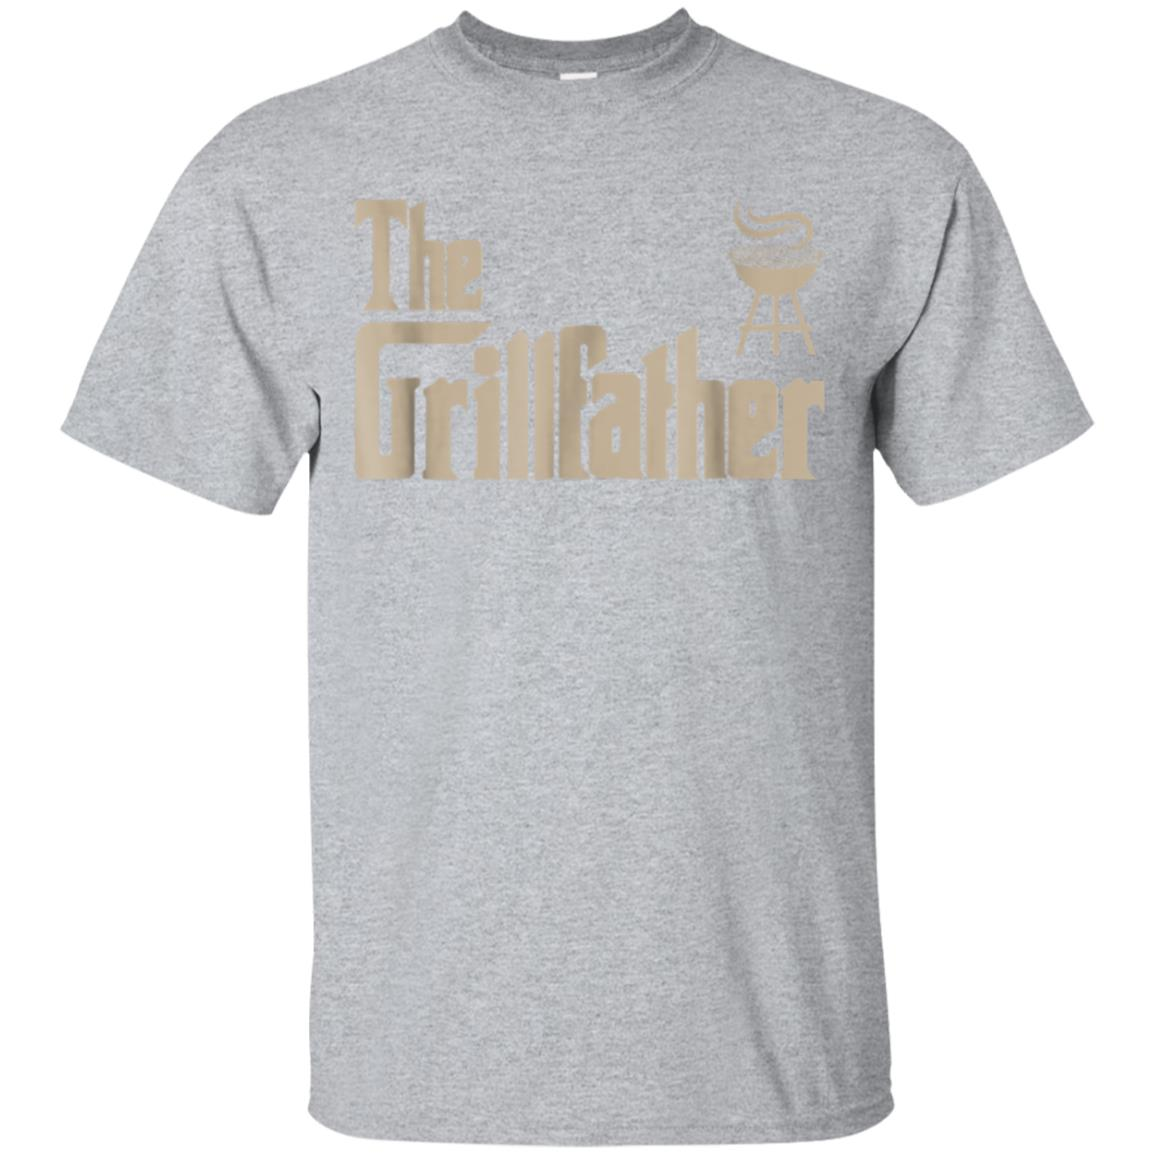 Mens Great Dad Gifts The Grillfather Men Tee Shirts 99promocode